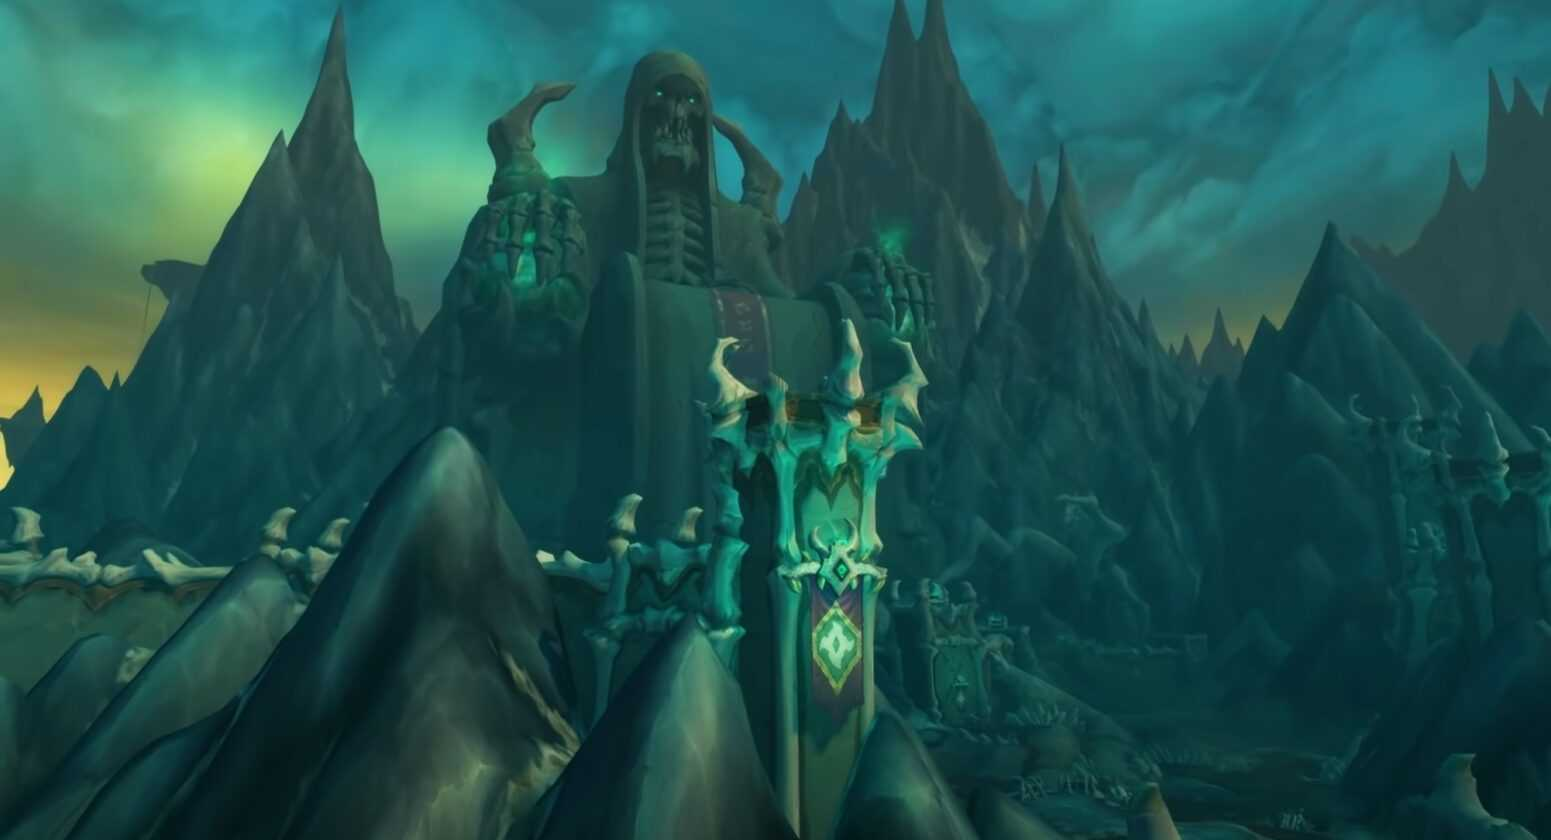 Blizzard Begins World Of Warcraft: Shadowlands Dungeon Bonus Week, Providing Extra Loot